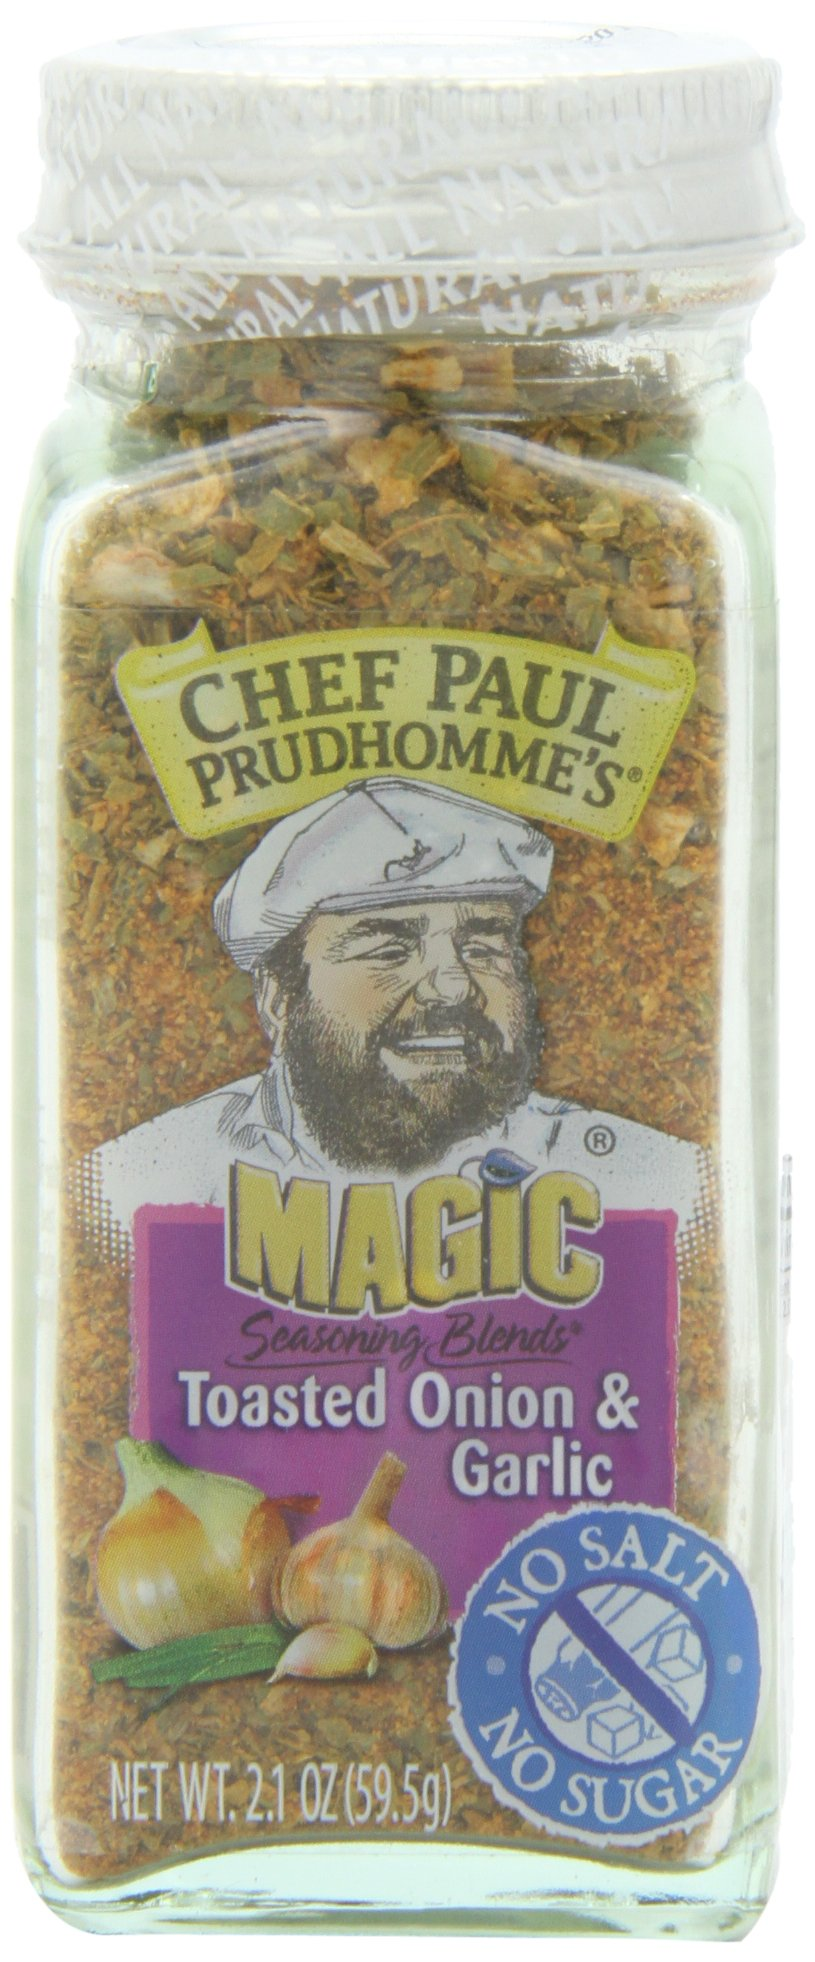 Chef Paul Prudhomme's Magic Seasoning Blends No Salt, Toasted Onion and Garlic, 2.1-Ounce